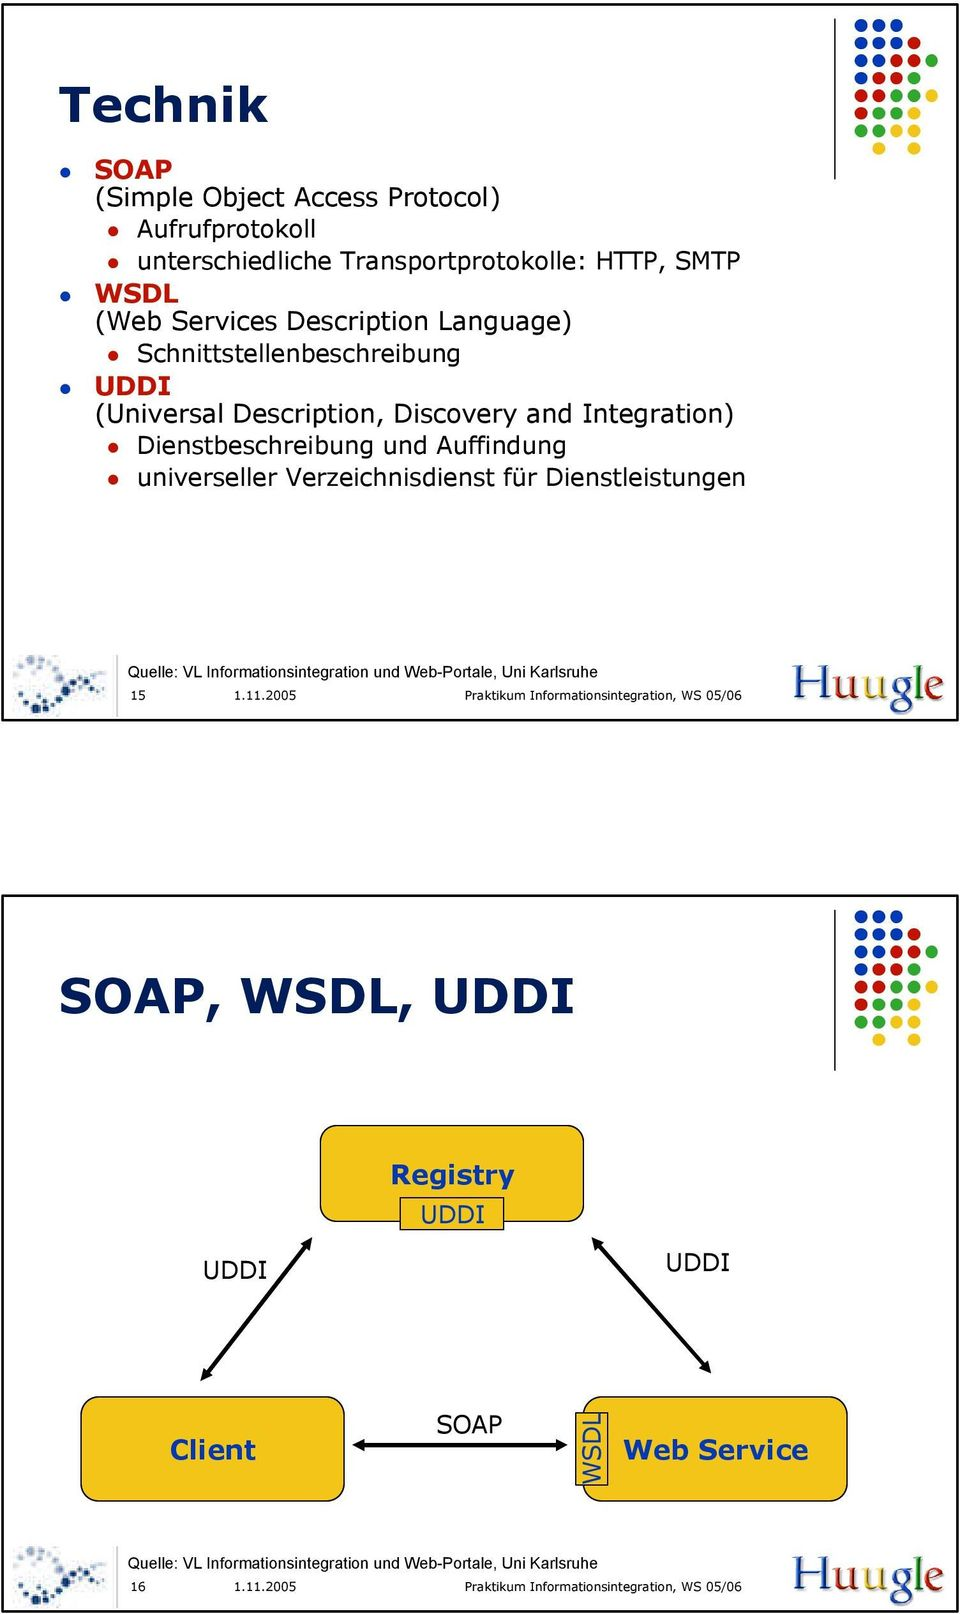 Description, Discovery and Integration) Dienstbeschreibung und Auffindung universeller